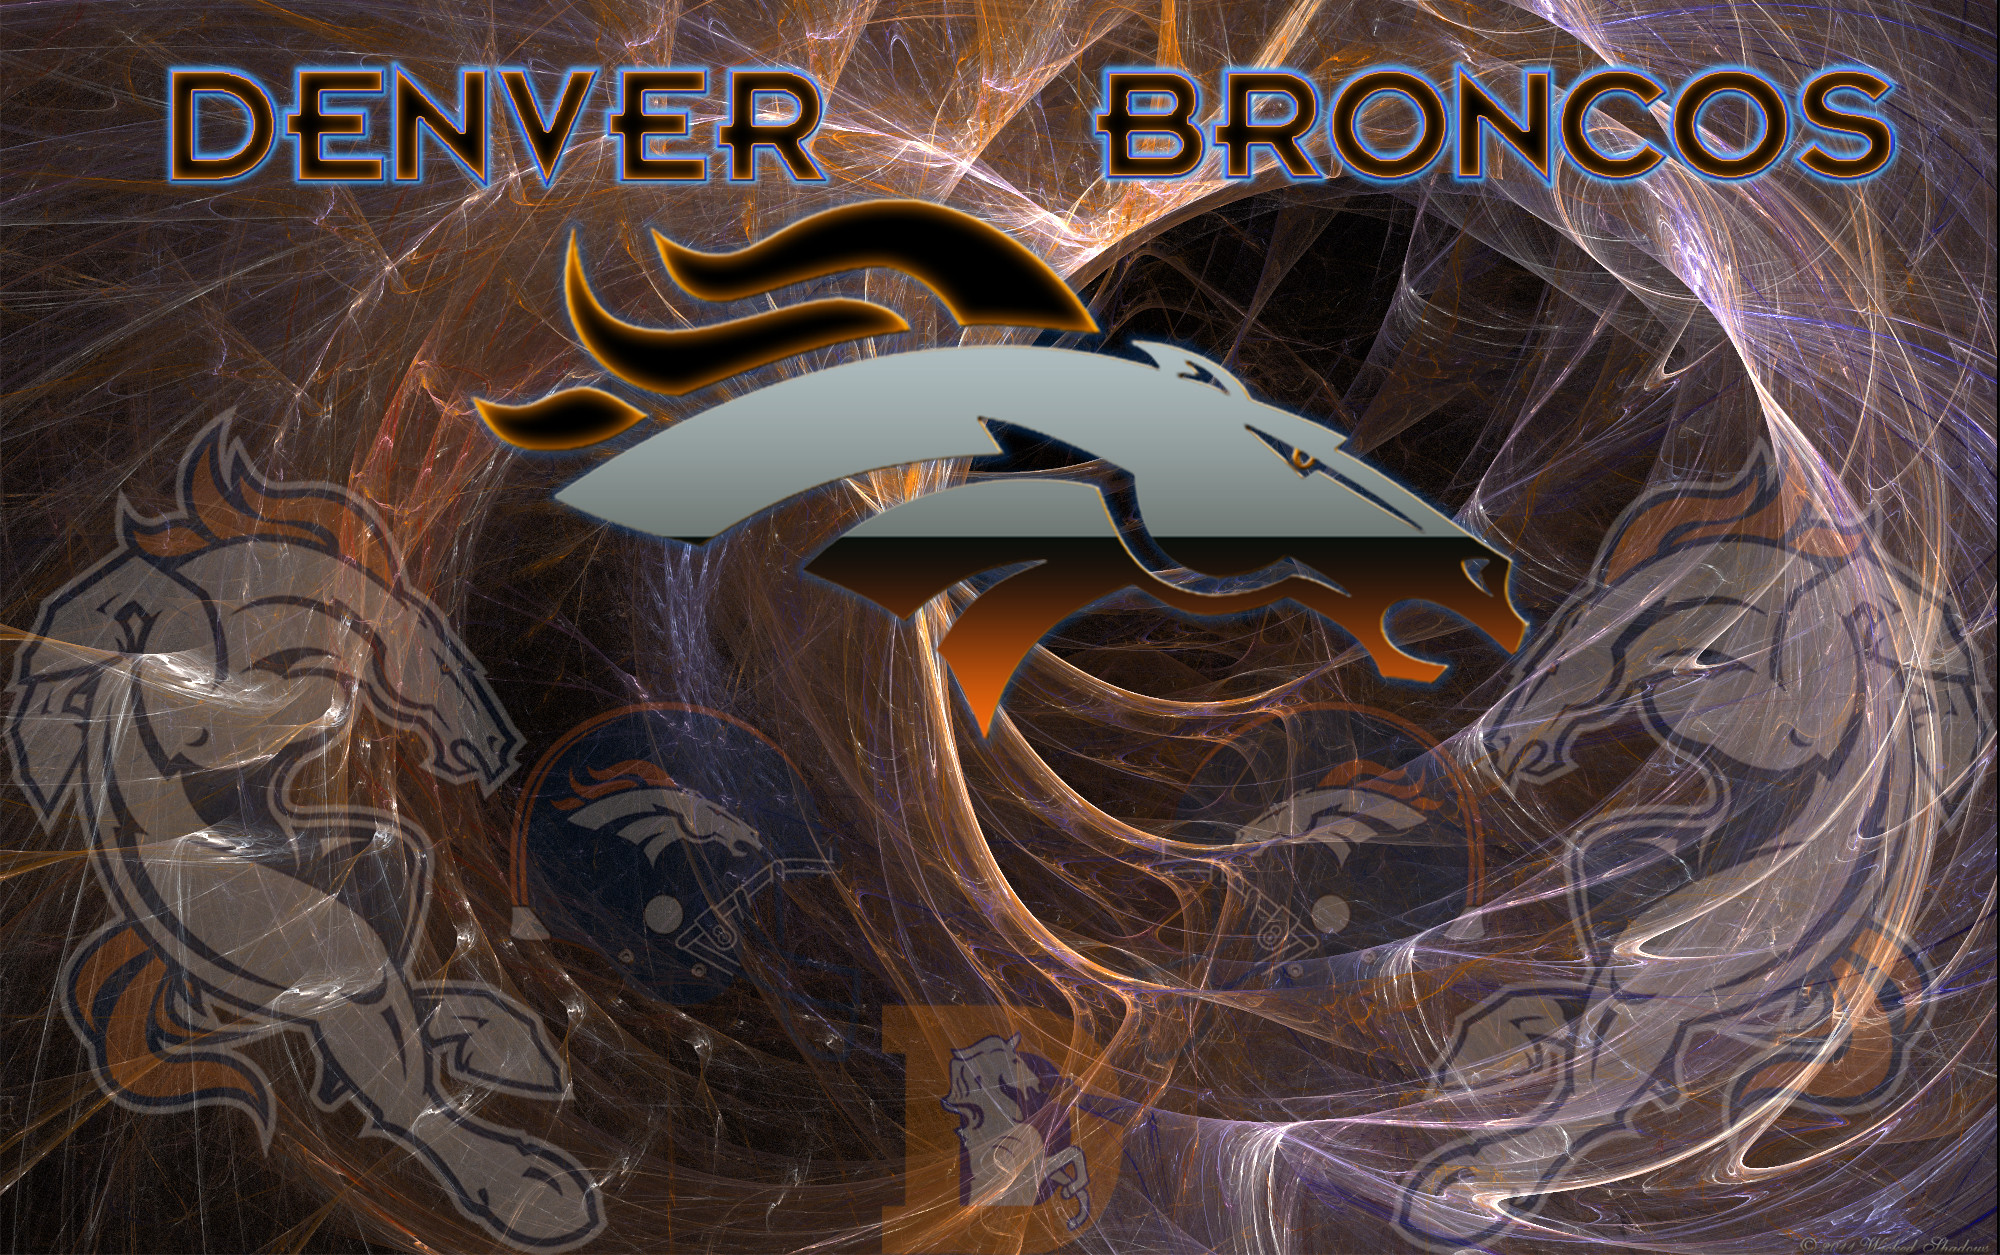 … bronco wallpapers hd wallpapercraft …